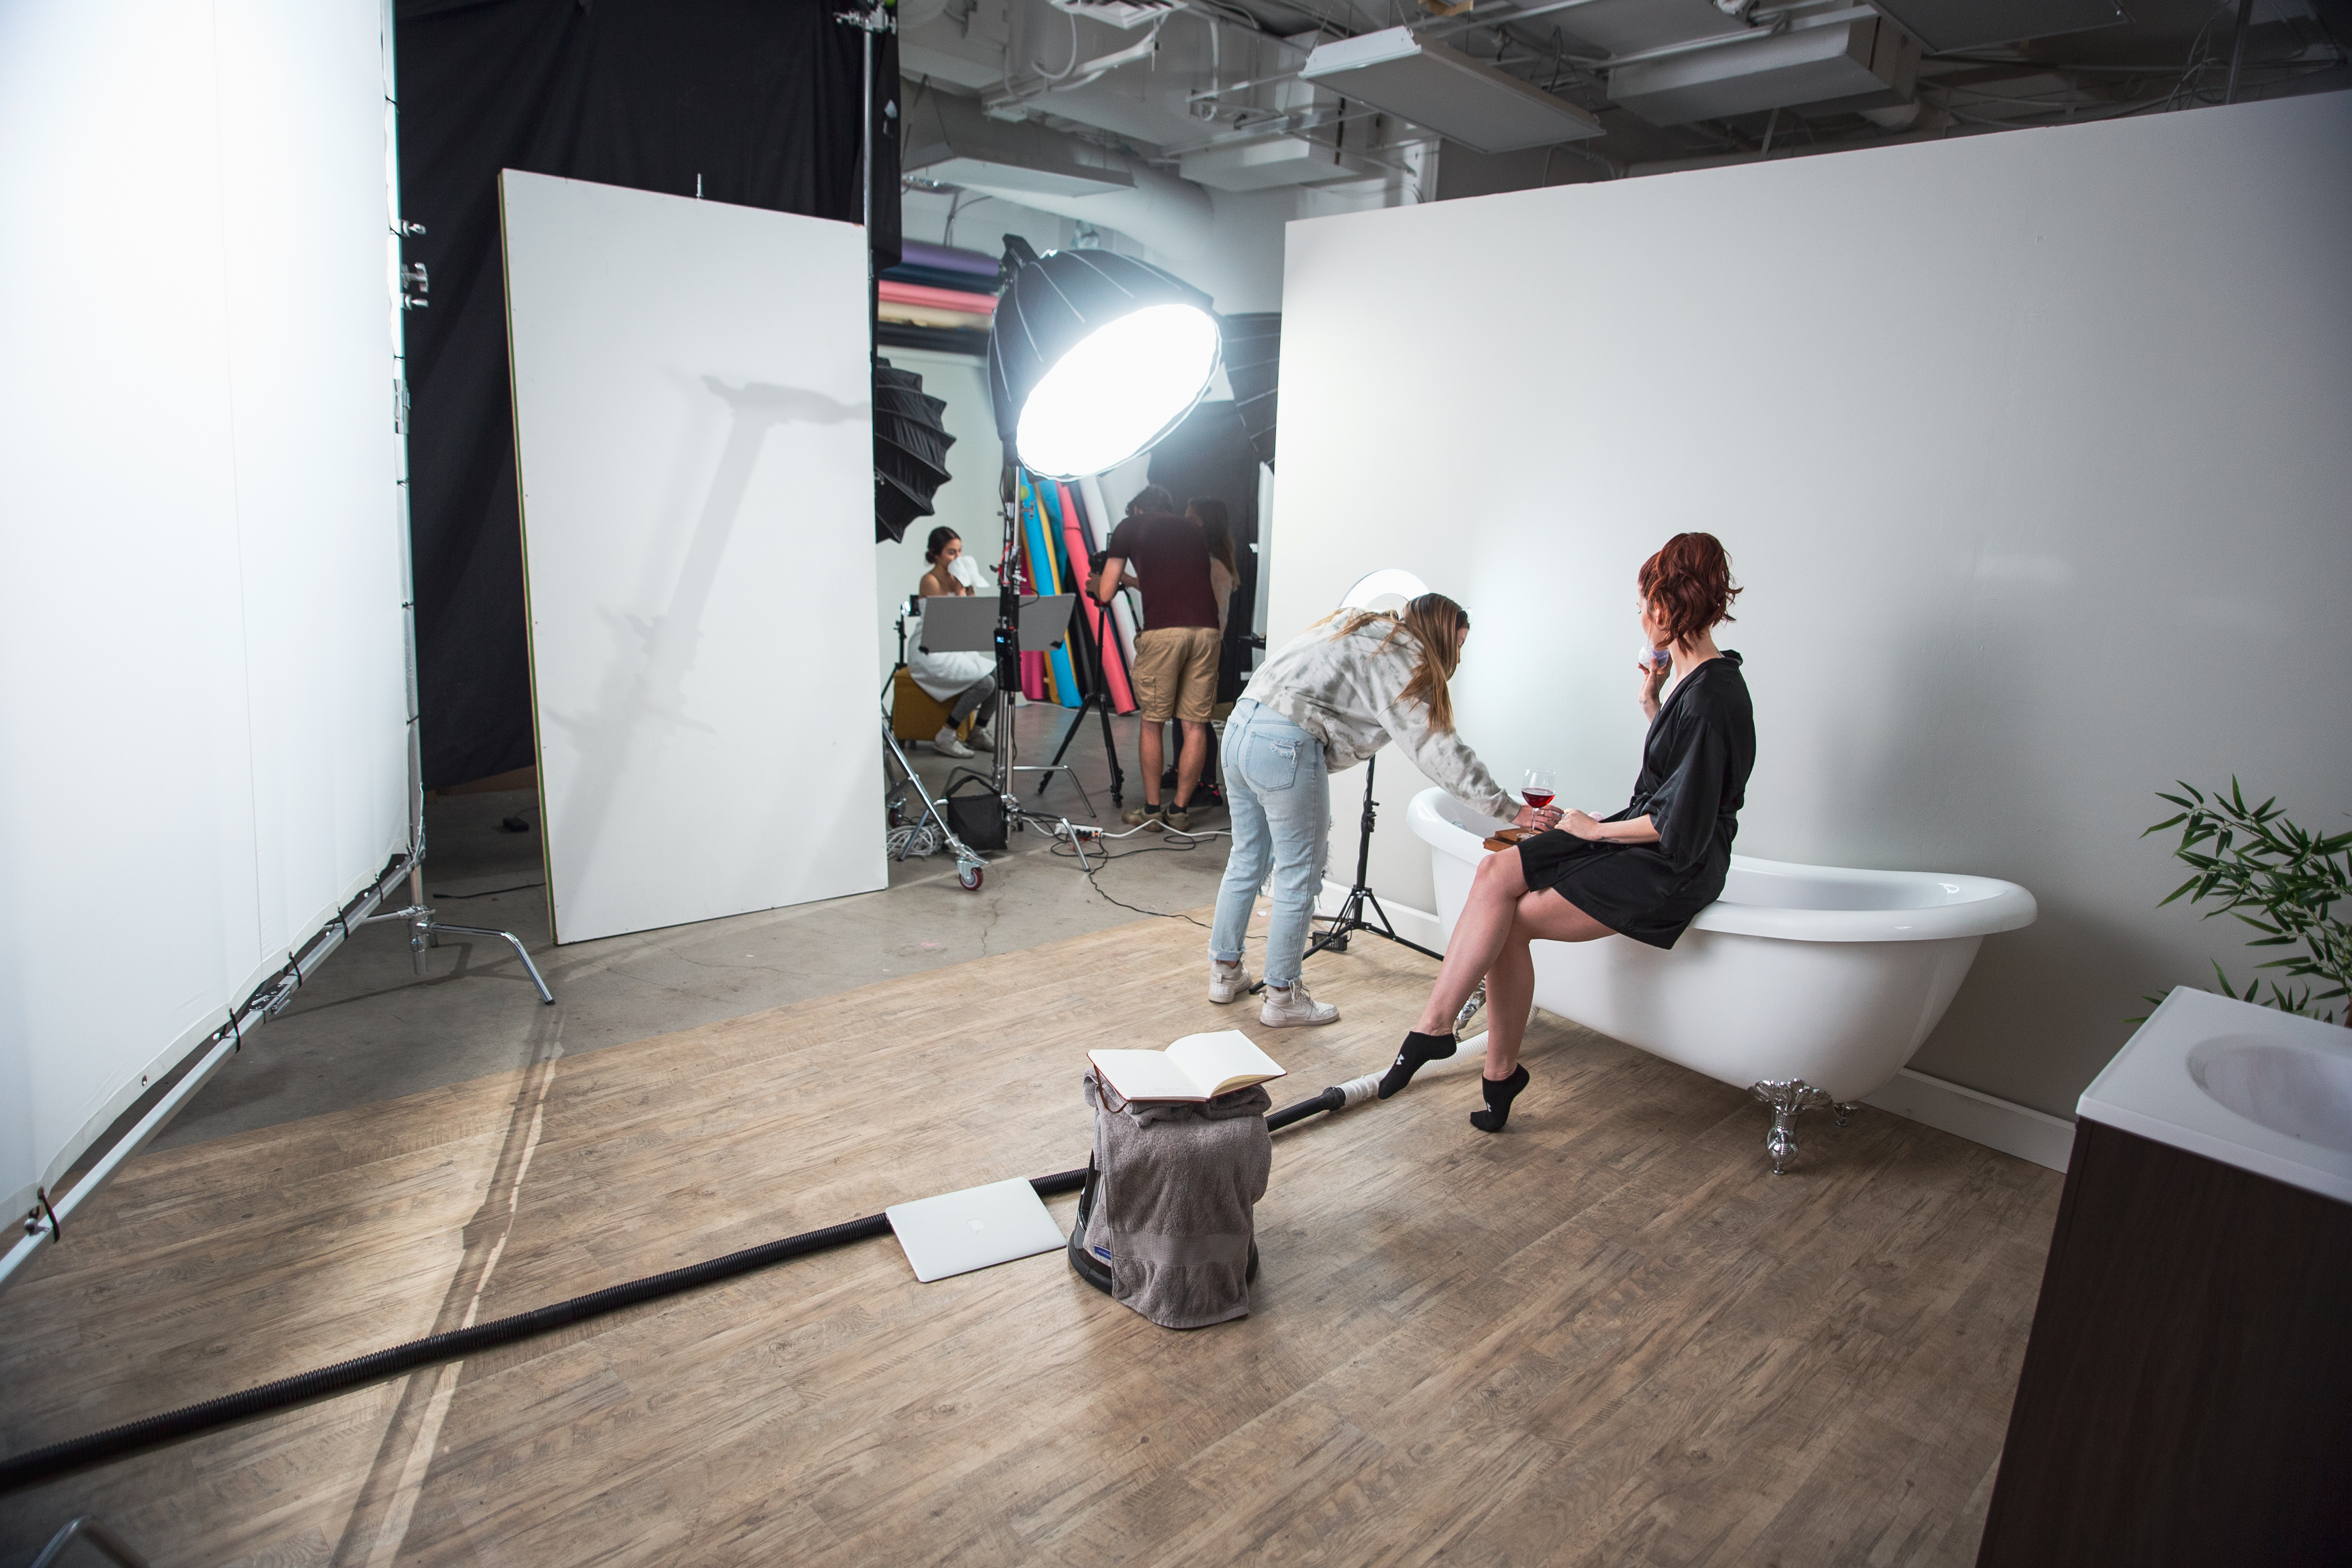 Woman sitting on the edge of a bathtub in a large room with a brown wooden floor.